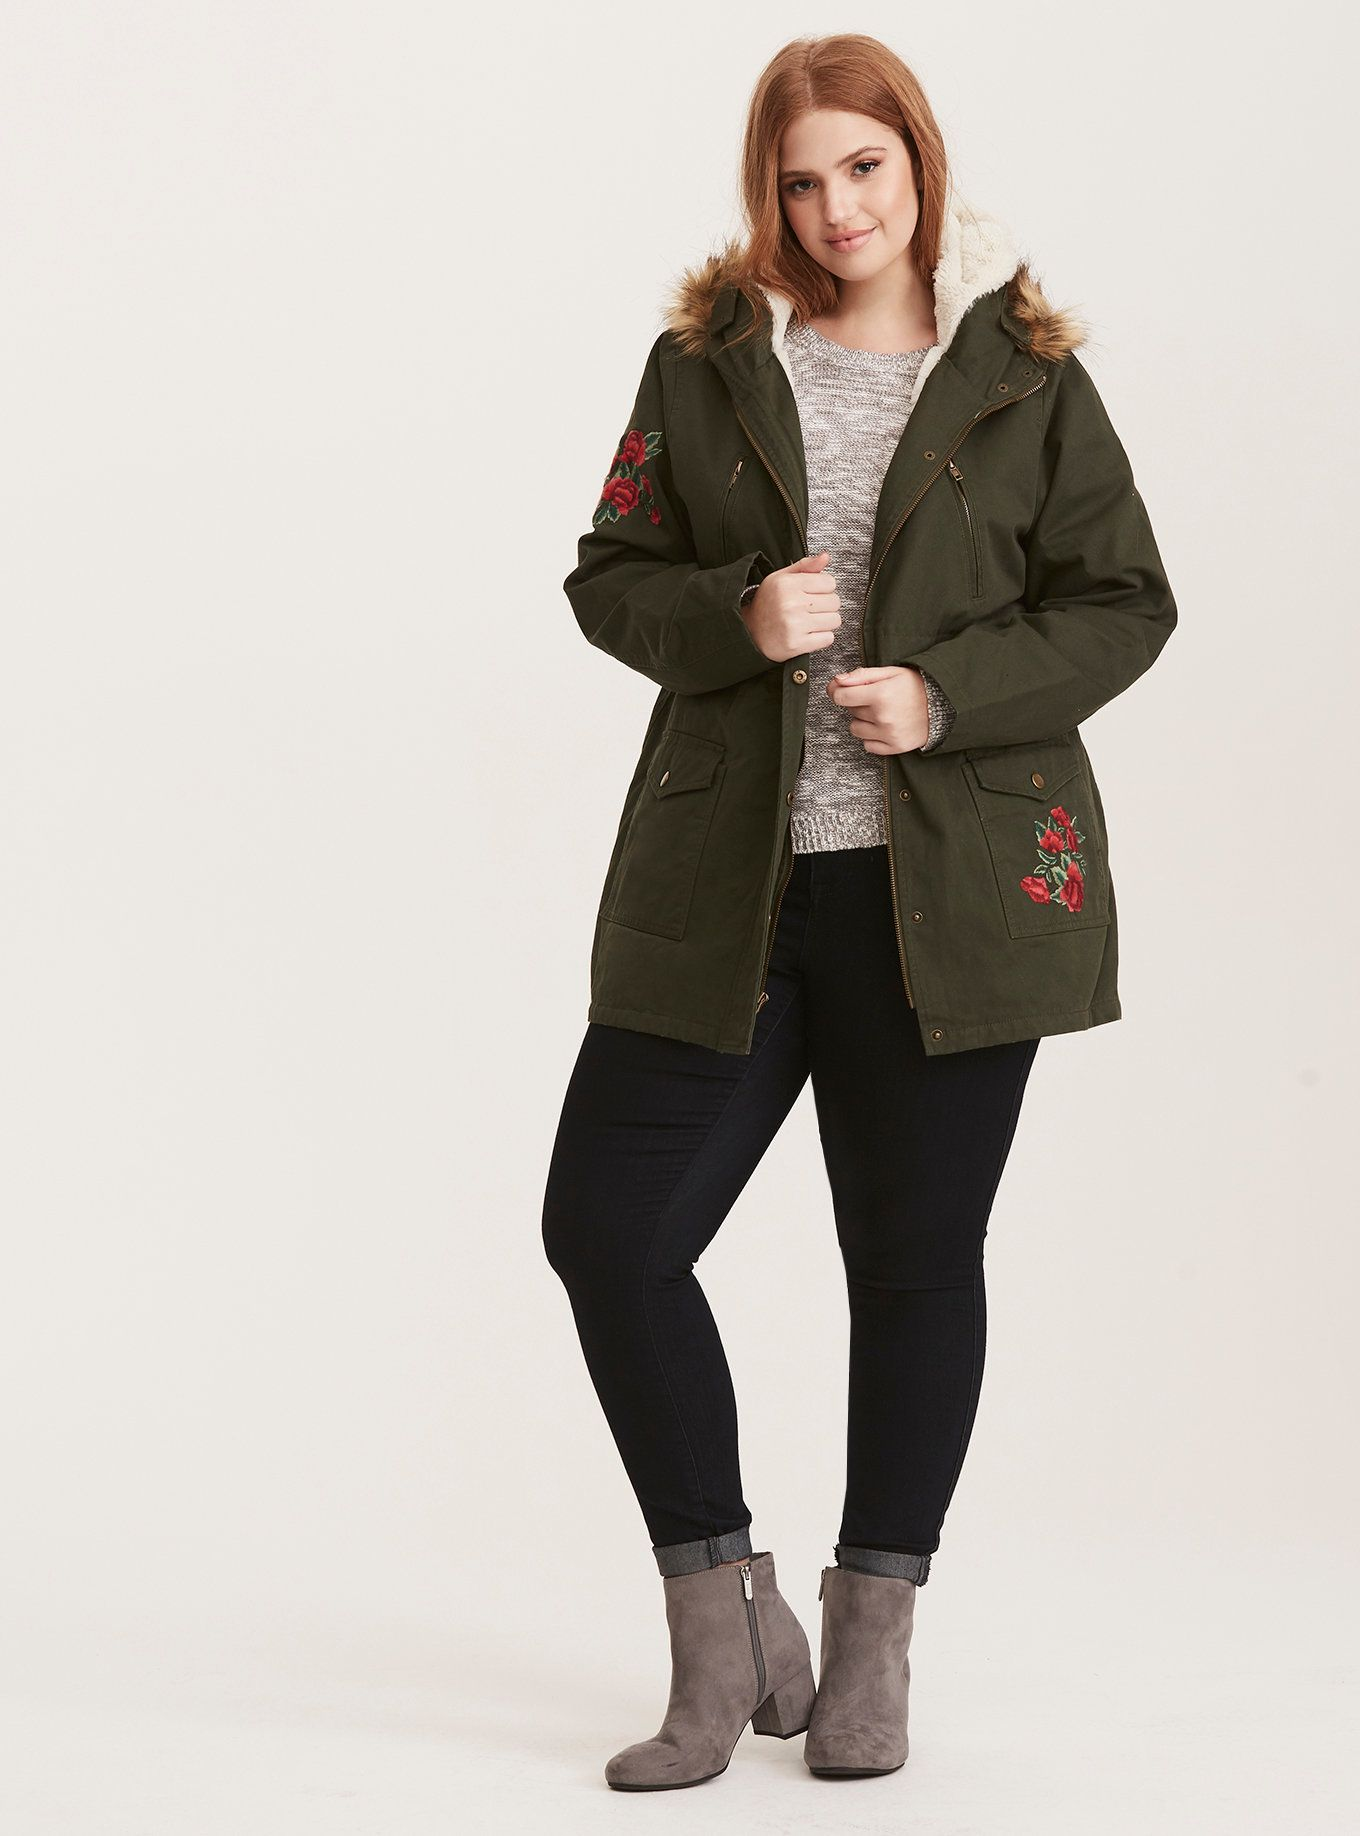 Embroidered Sherpa Lined Anorak Outerwear Jacket Flattering Plus Size Dresses Fashion Working Mom Outfits [ 1836 x 1360 Pixel ]